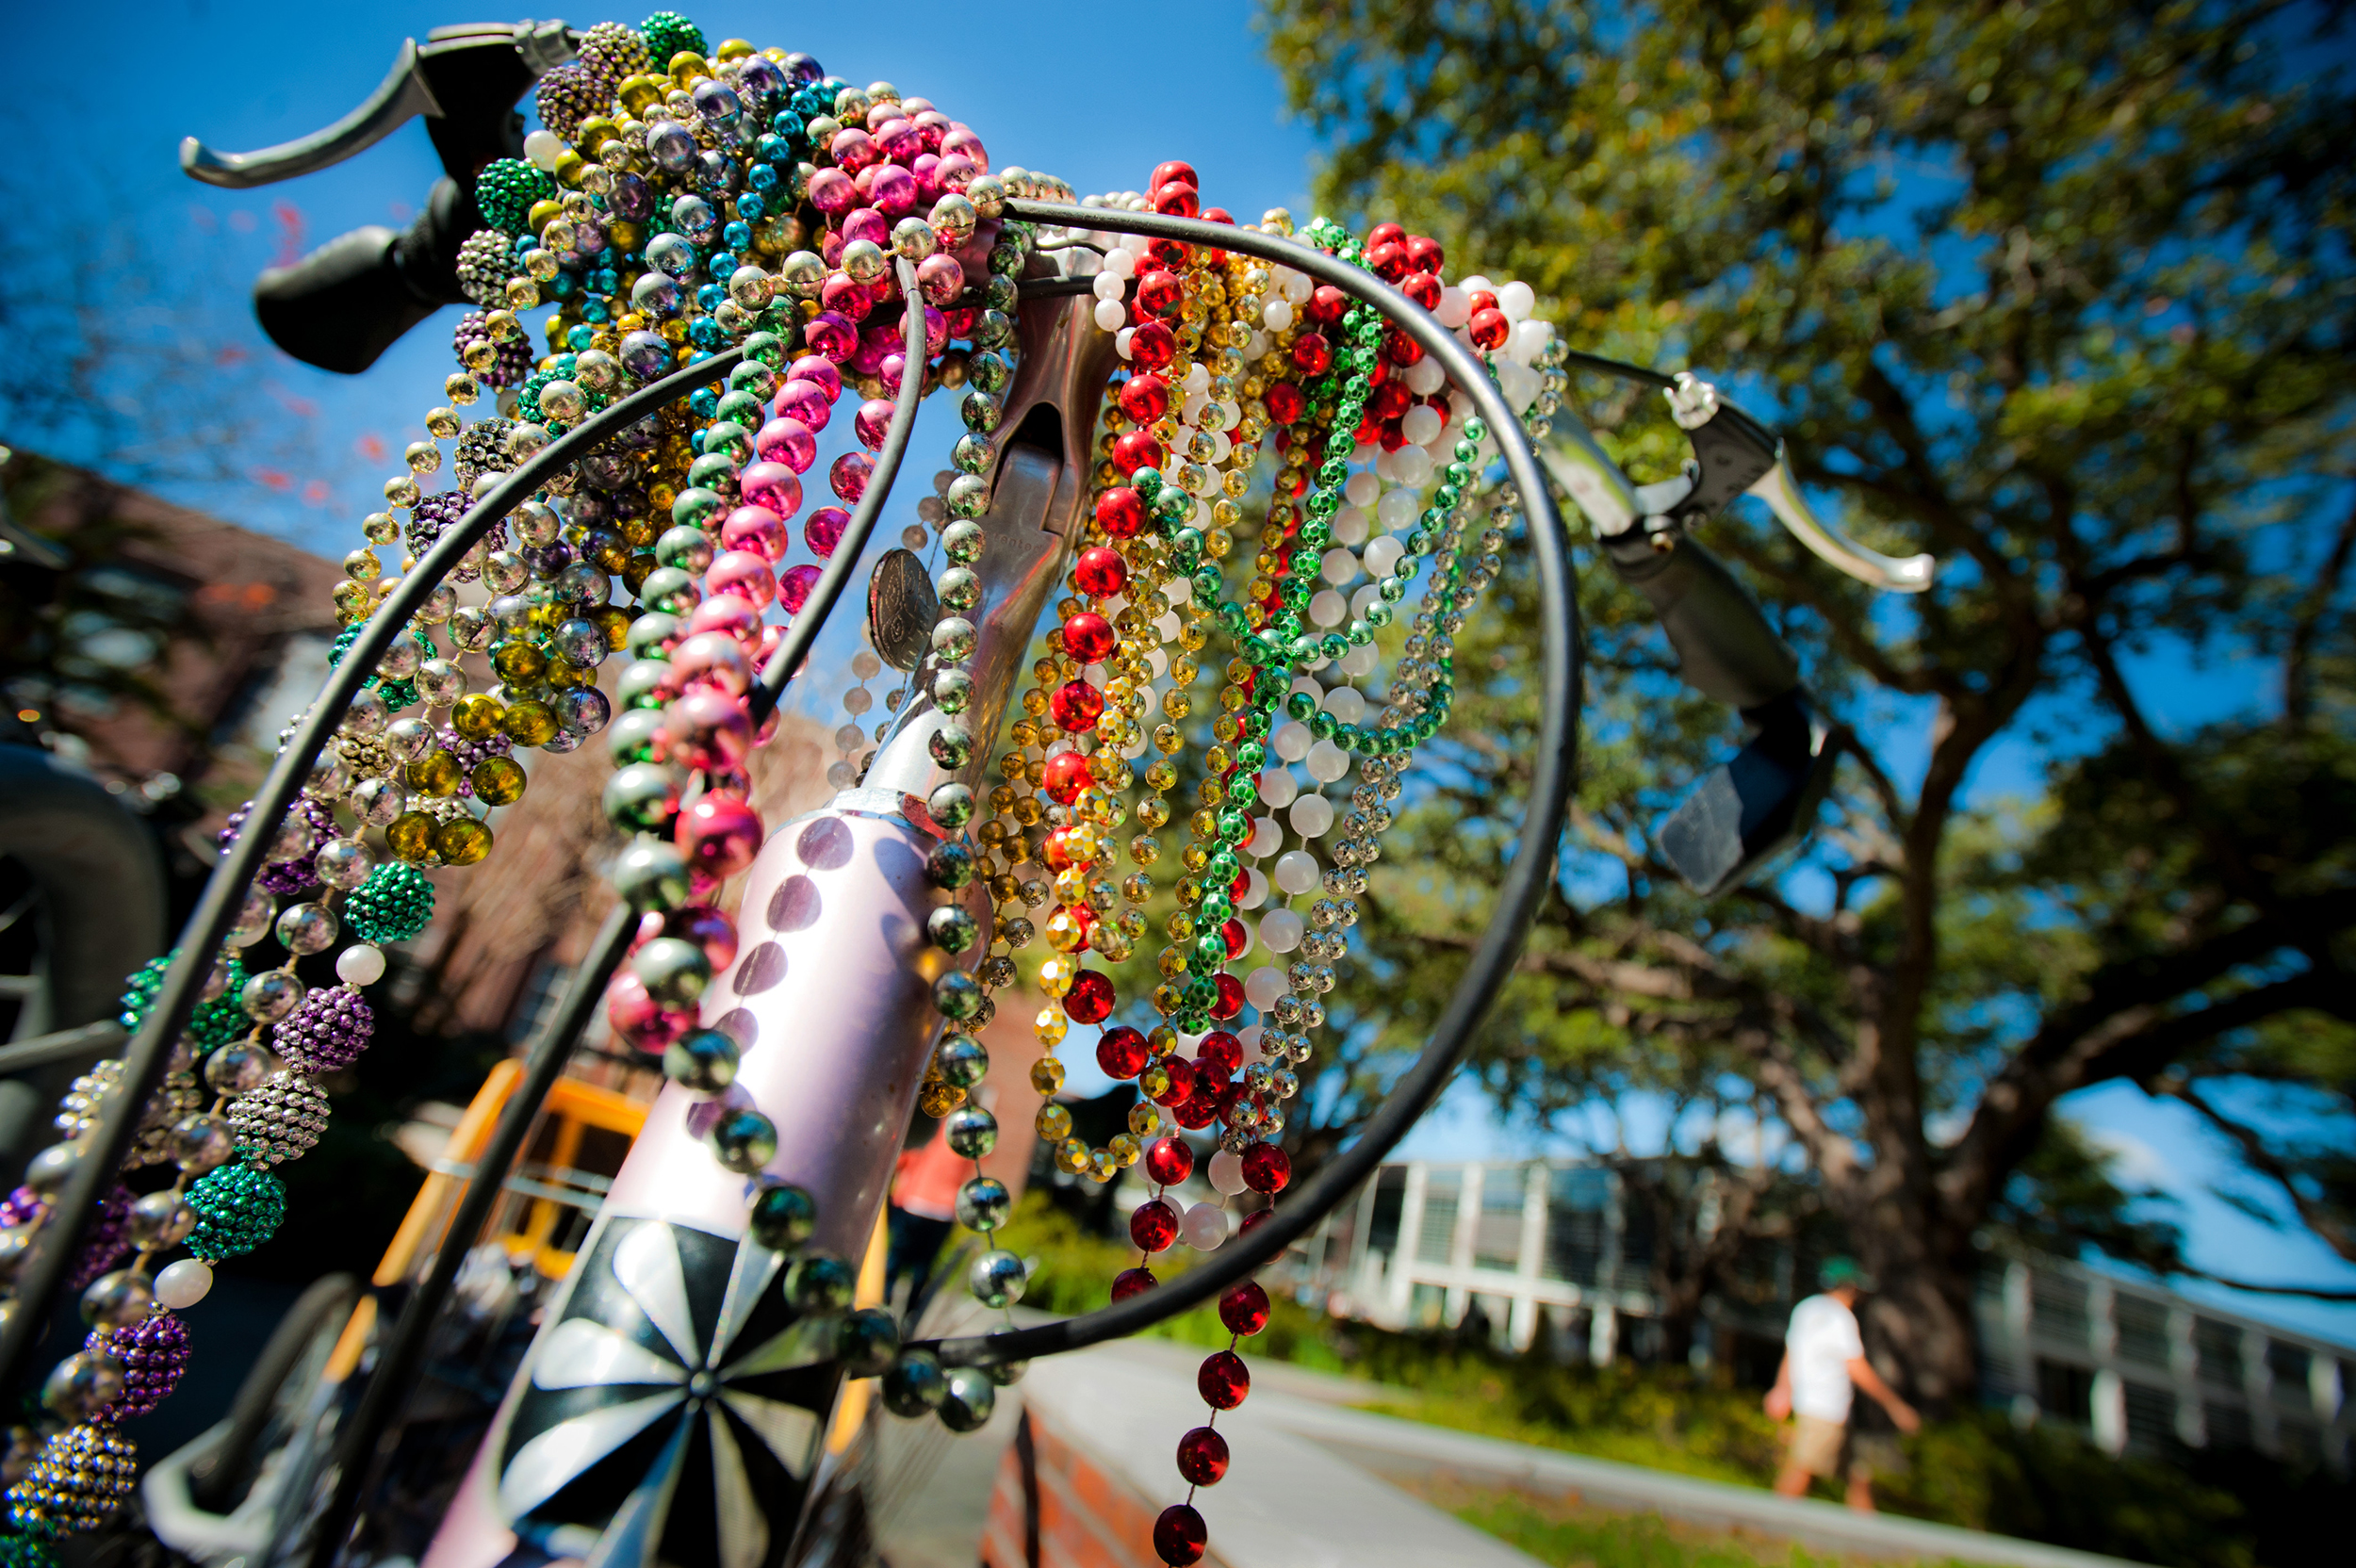 Mardi Gras beads dangling off front bicycle handle.